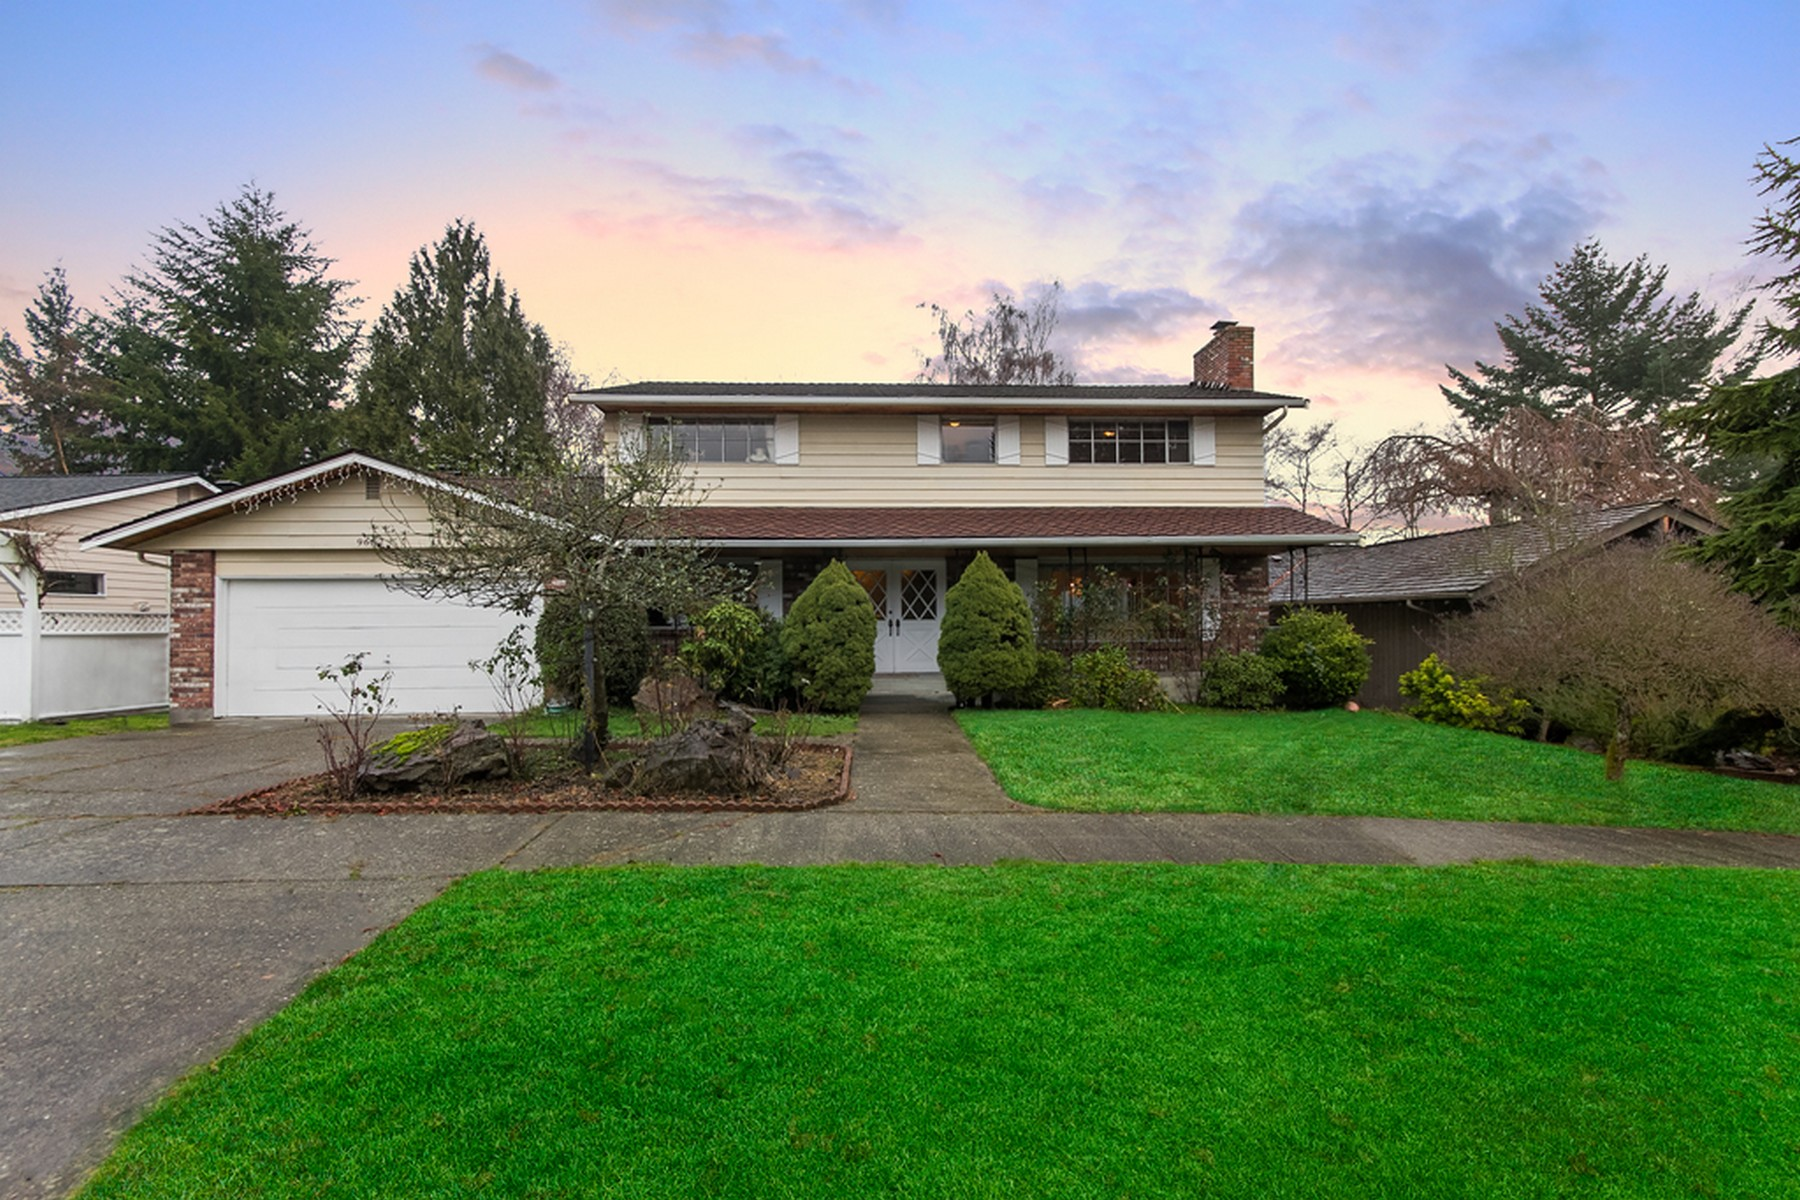 Single Family Home for Sale at Meadowbrook Estates Home 9652 42nd Ave NE Seattle, Washington 98115 United States